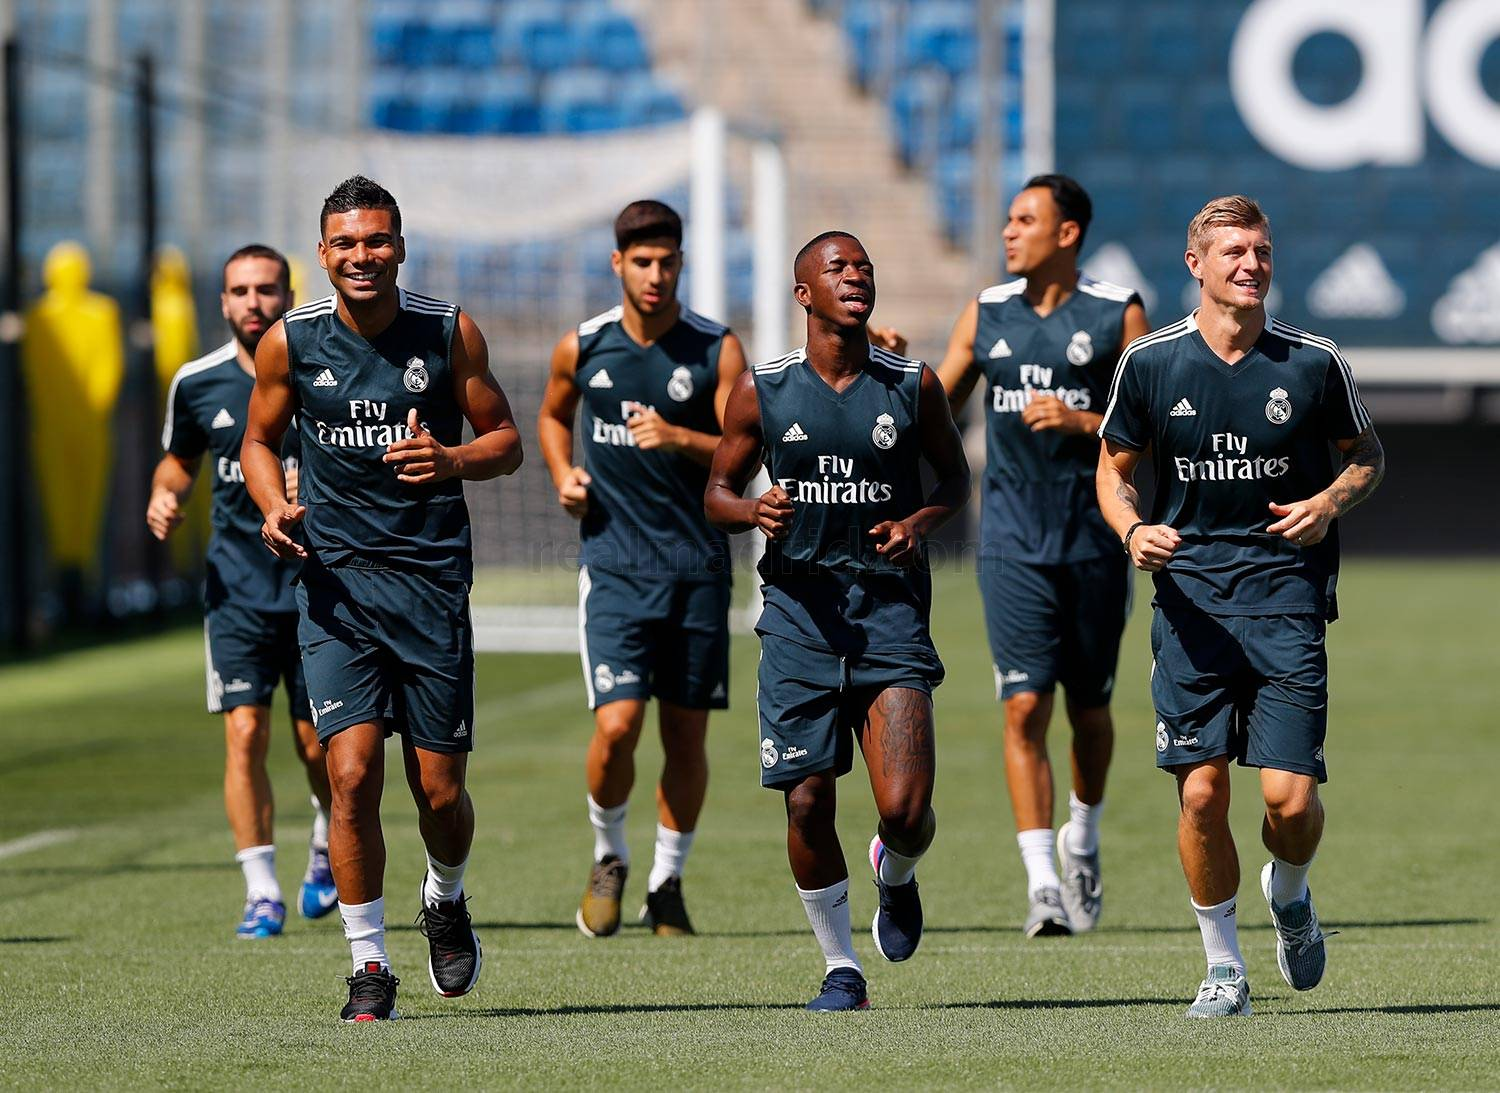 Real Madrid - Entrenamiento del Real Madrid - 27-08-2018